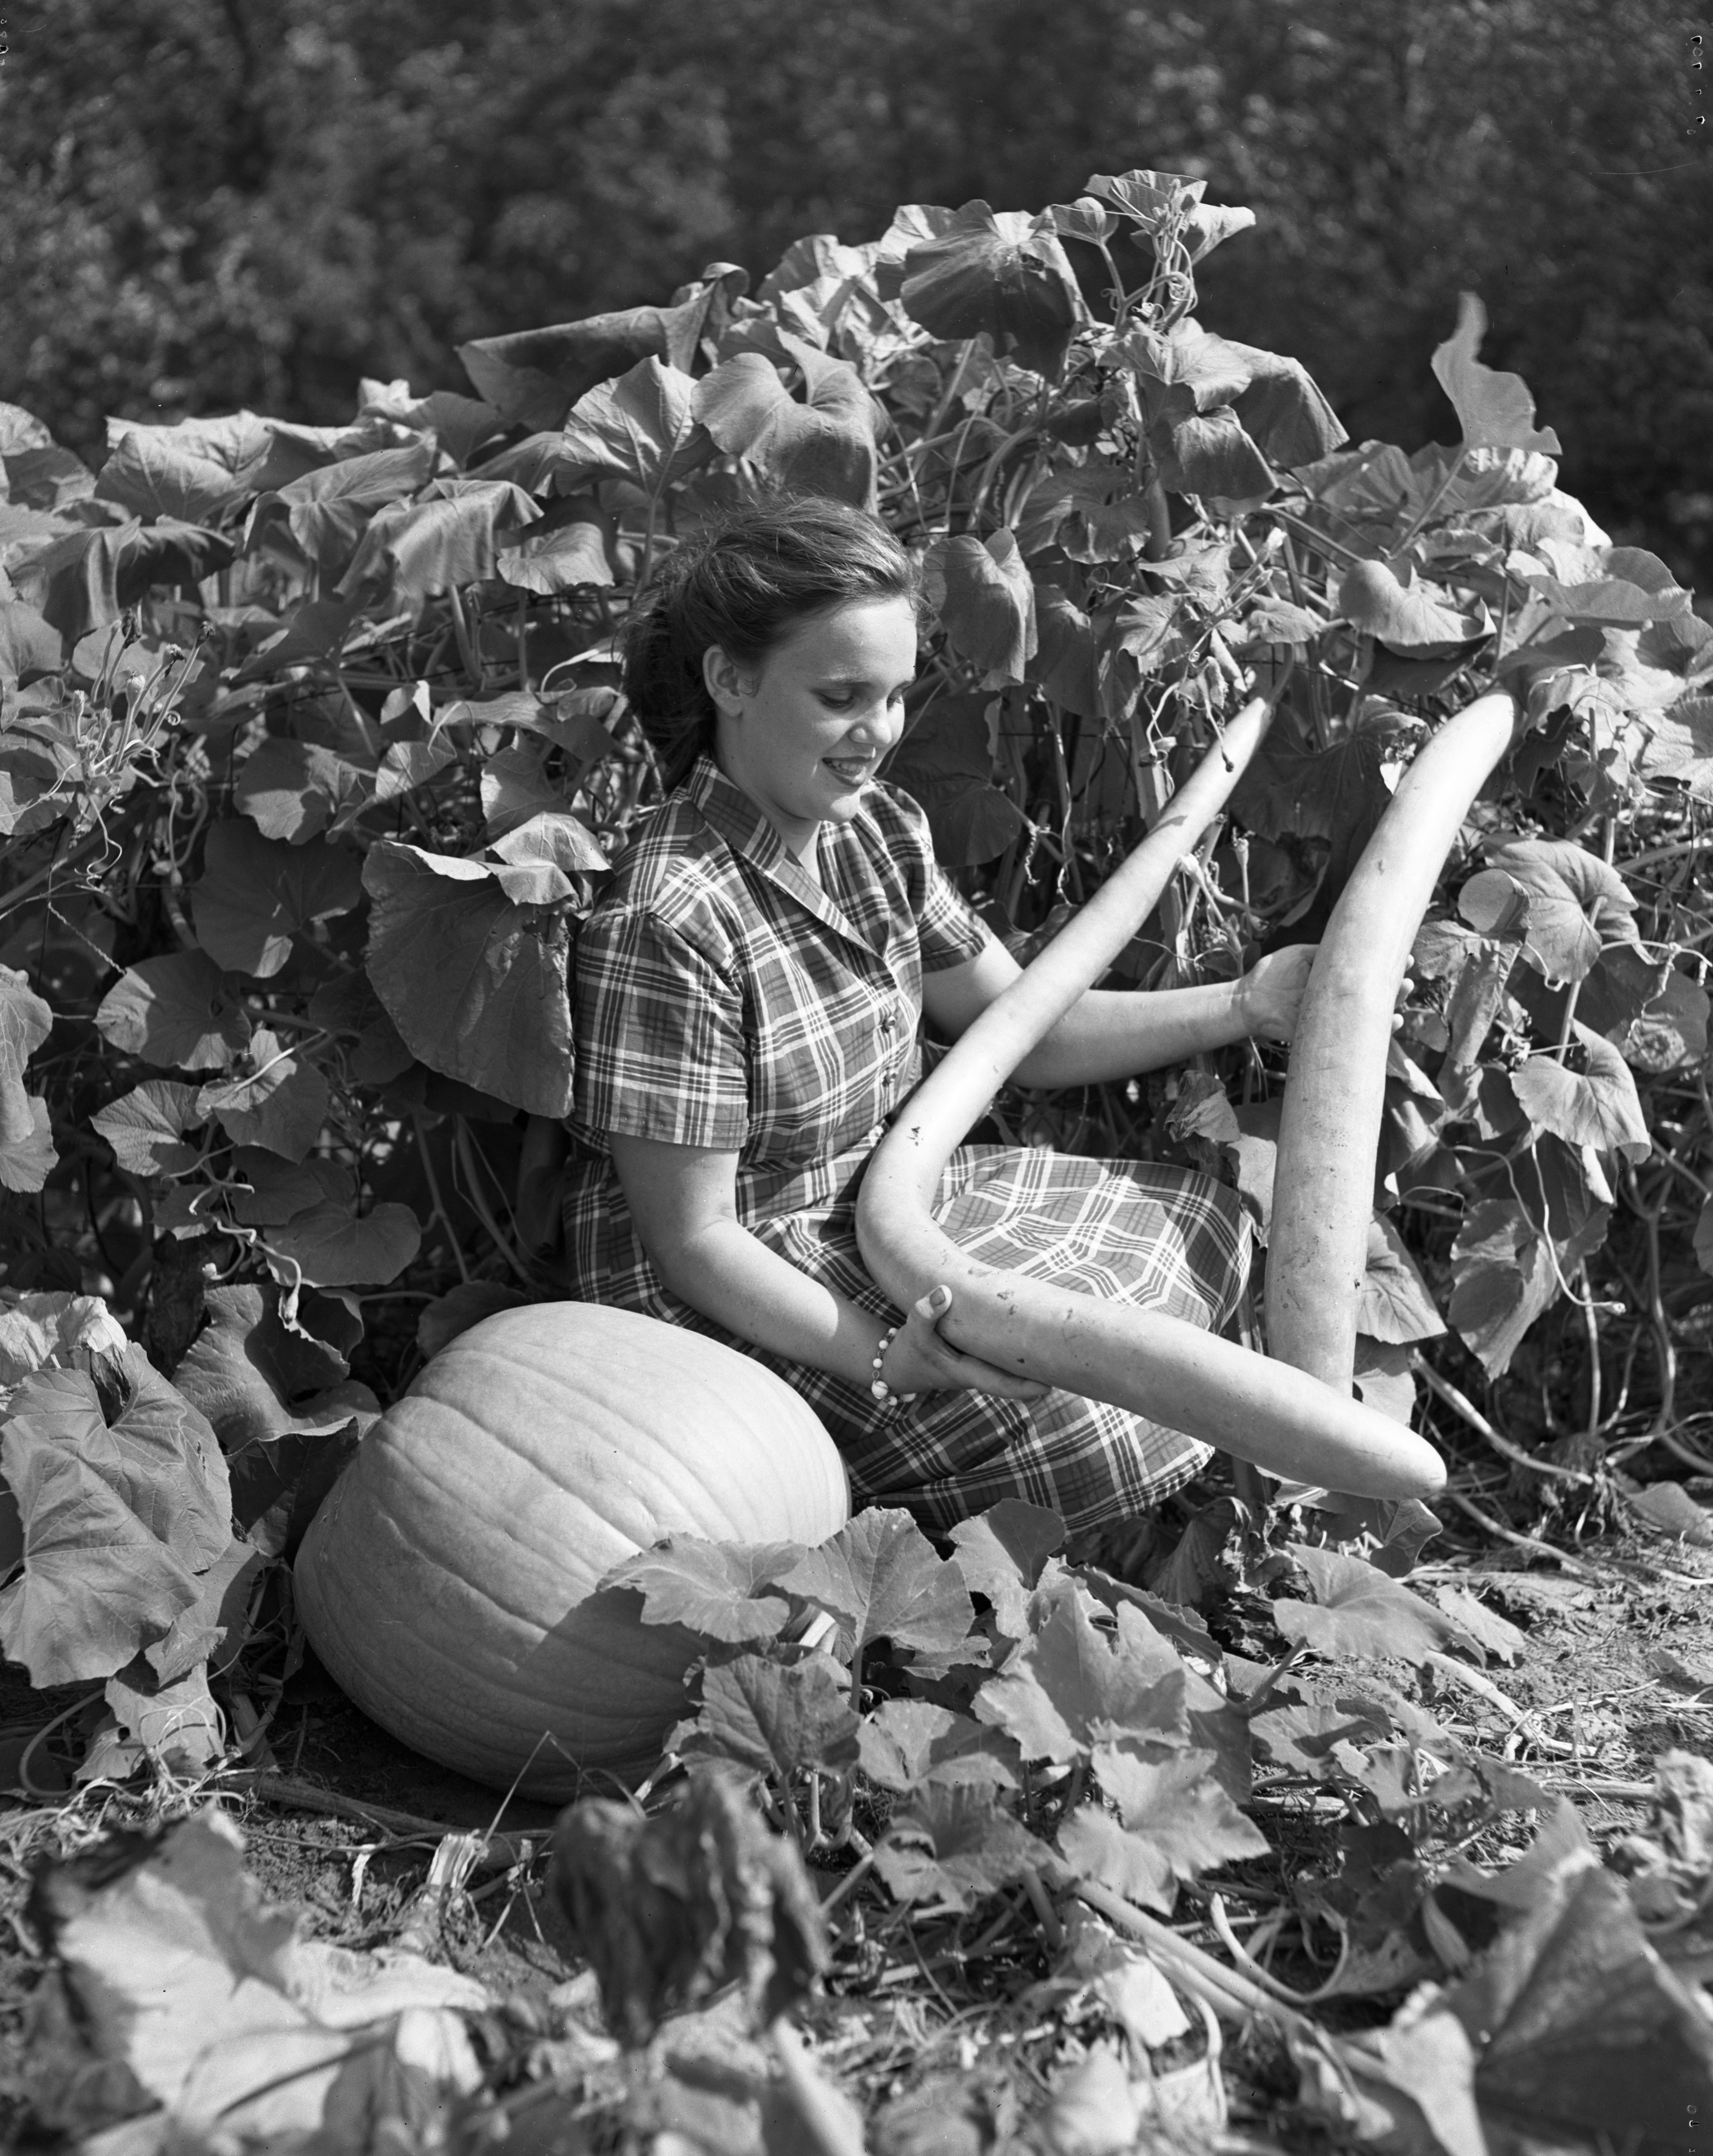 Glenna Sunday With New Guinea Beans And Pumpkins, September 1951 image